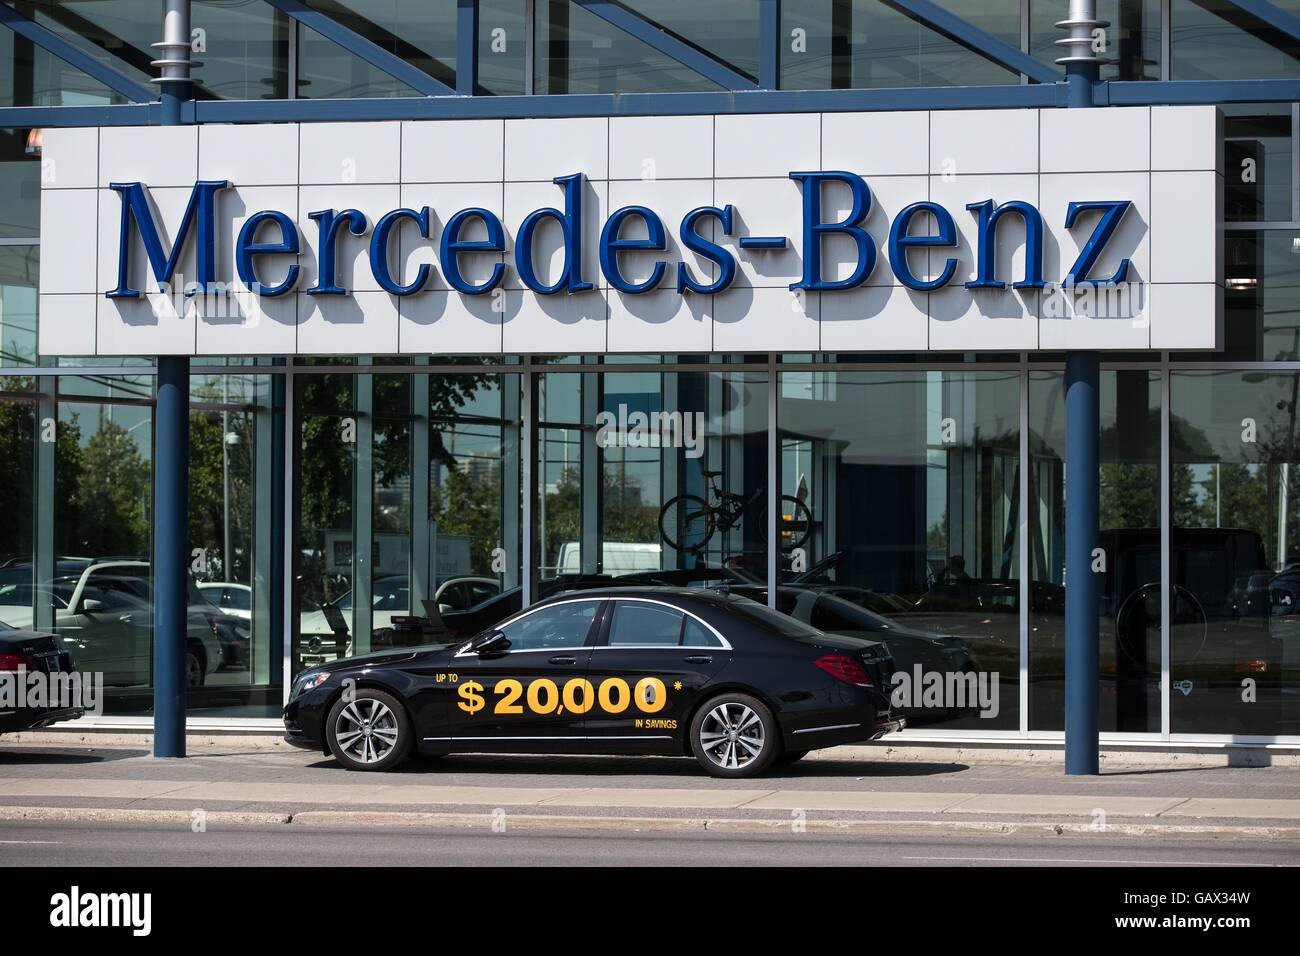 Ottawa, Ontario, Canada. 5th July, 2016. The Mercedes Benz Dealership